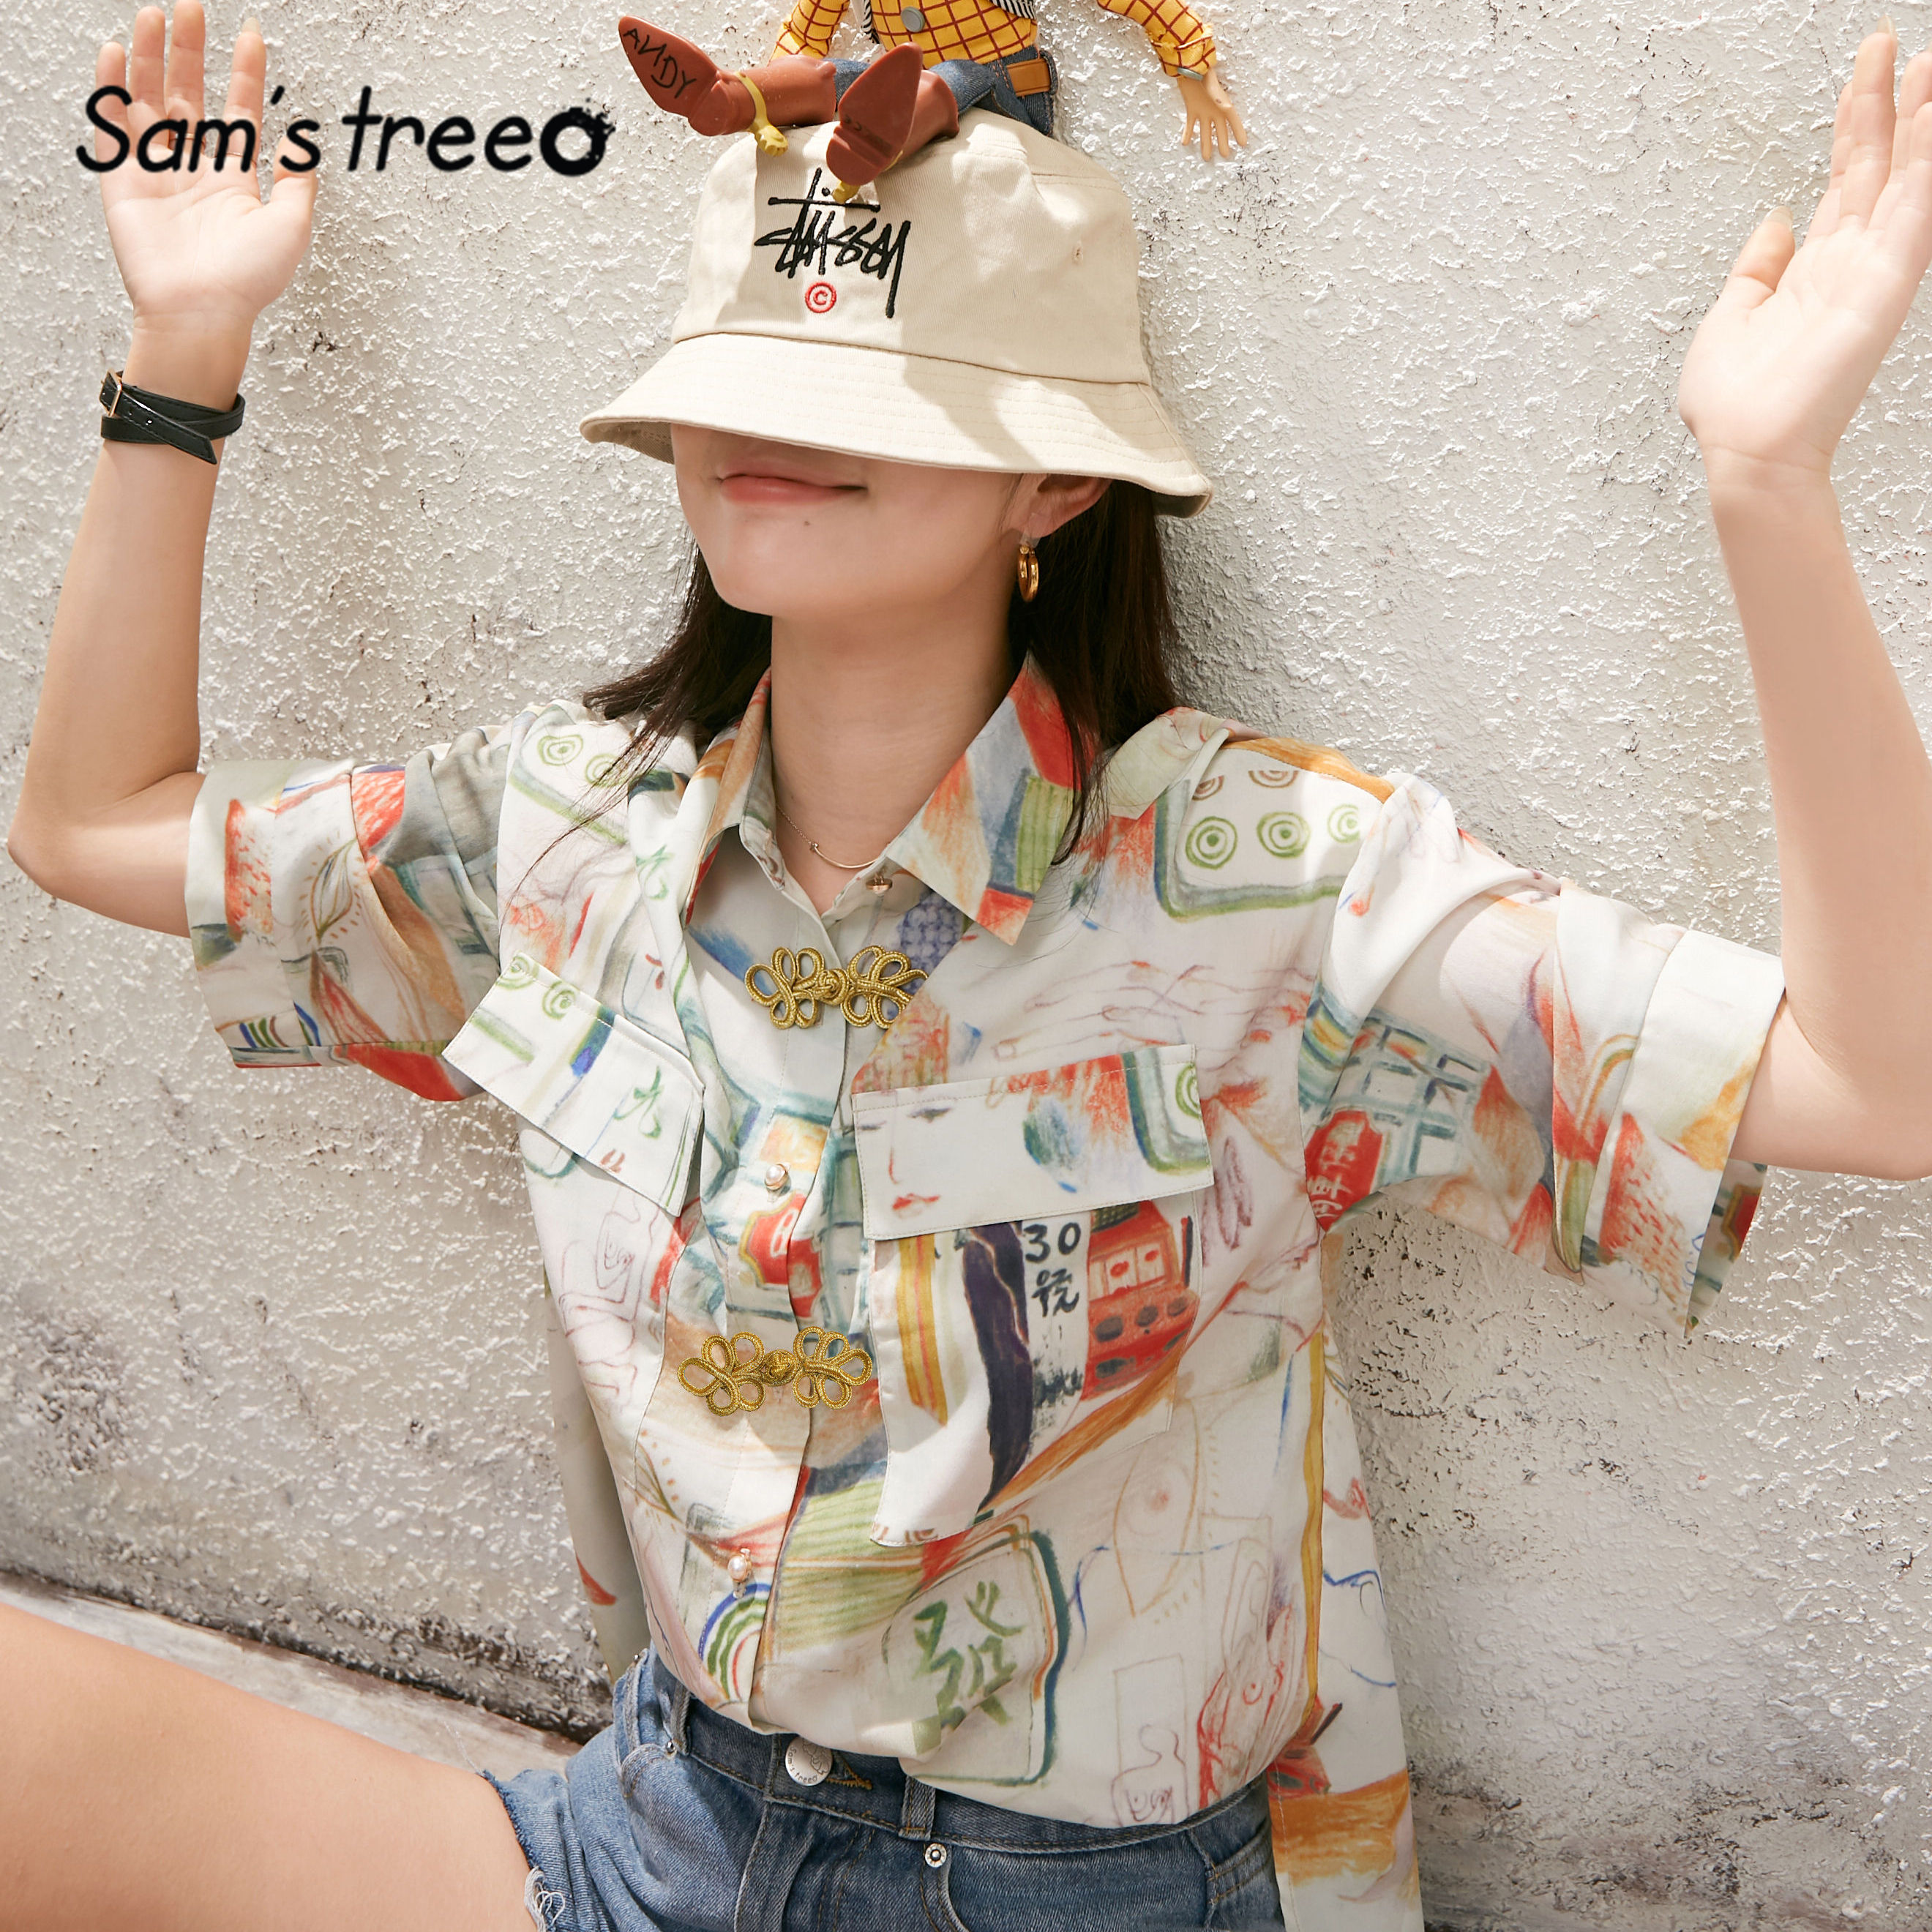 SAM'S TREE Multicolor Graphic Print Chic Pearls Button Casual Women Shirts 2020 Summer Half Sleeve Korean Ladies Daily Tops